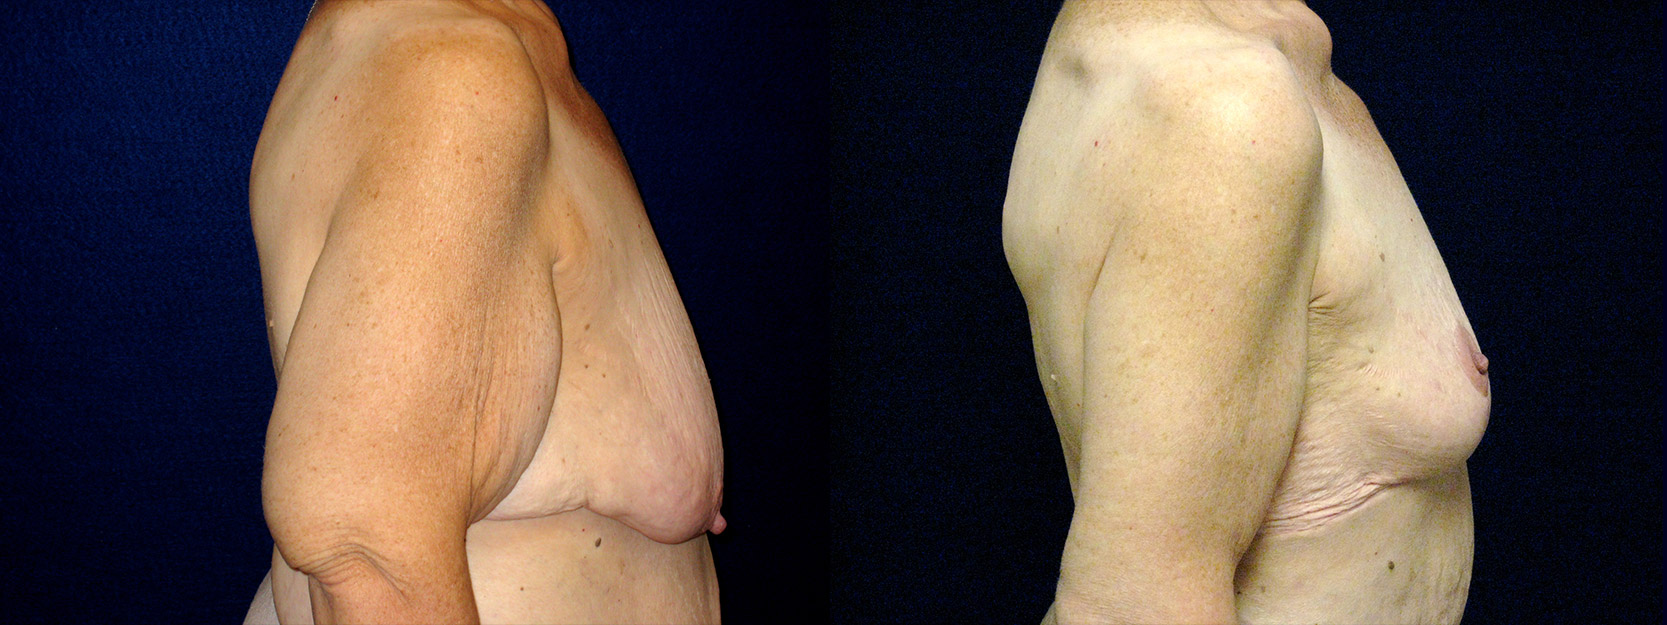 Right Profile View - Breast Reduction Mastopexy and Arm Lift After Massive Weight Loss